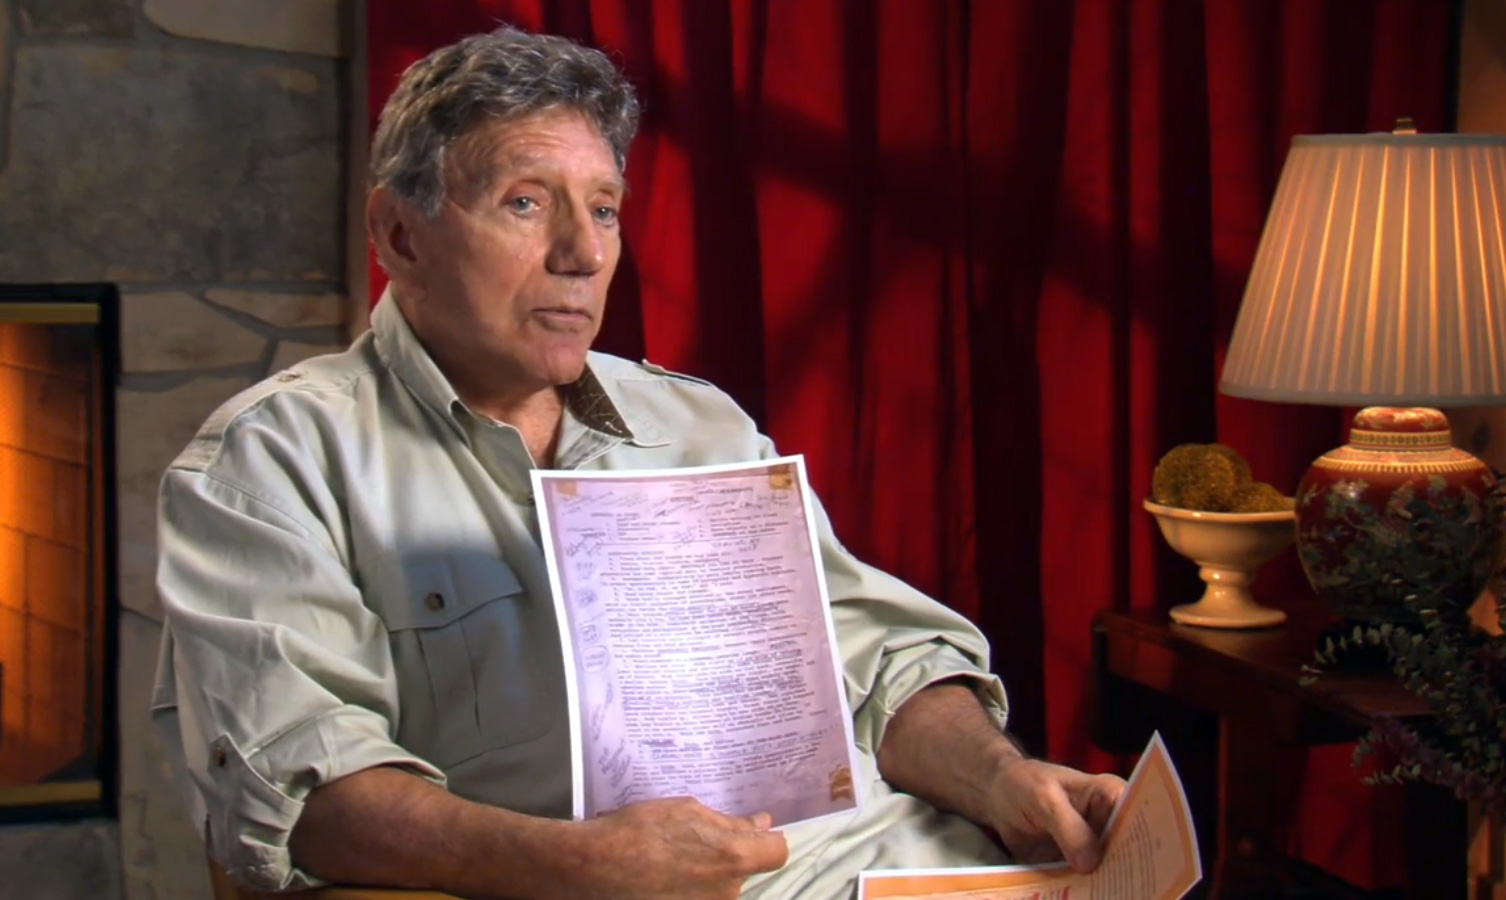 William Peter Blatty shows notes he took before writing The Exorcist